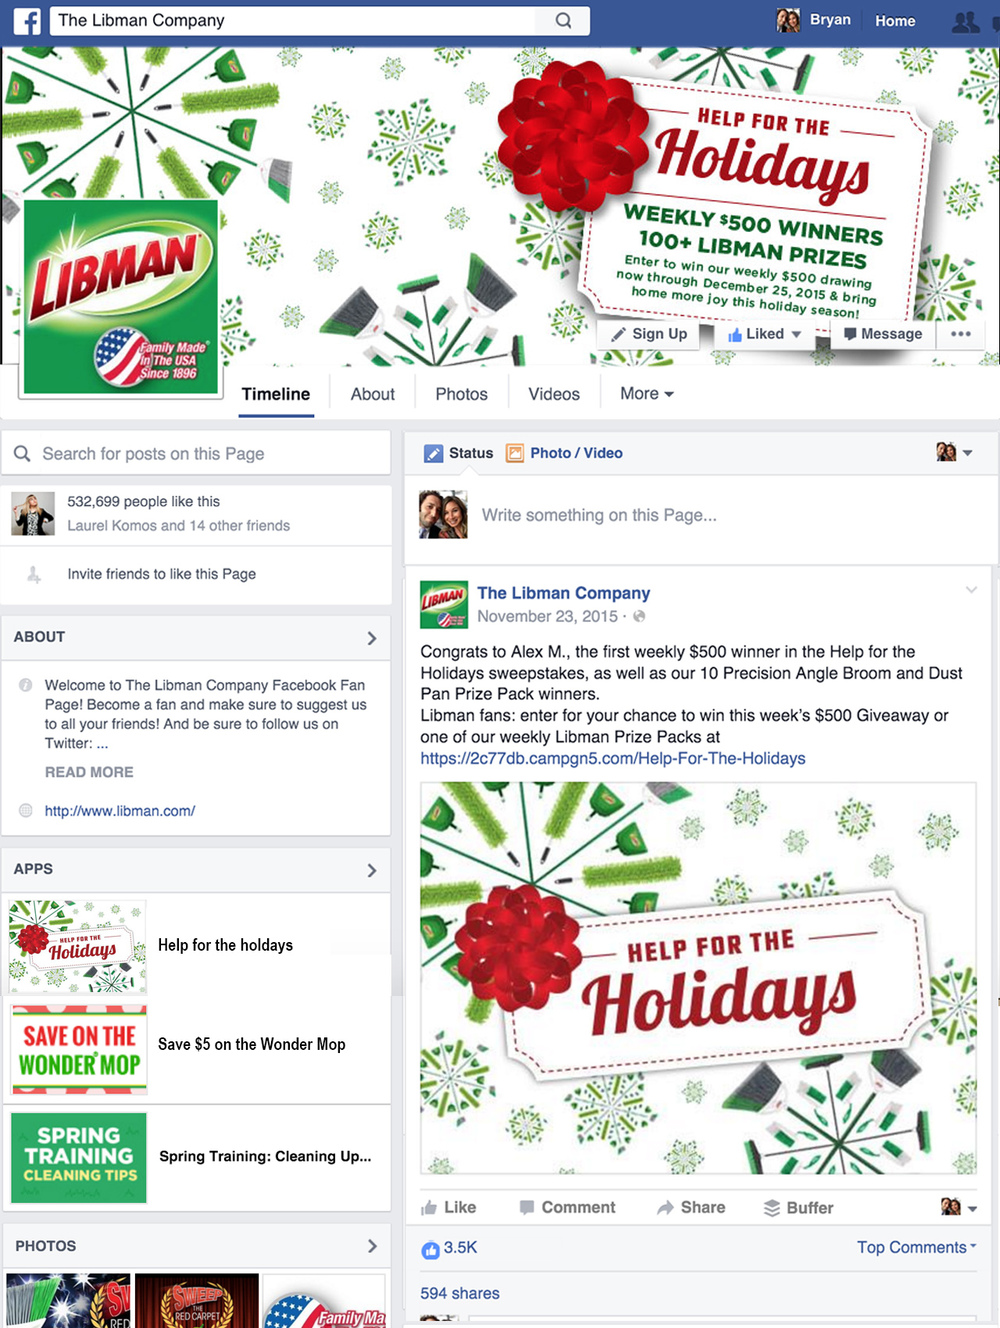 Libman_HFH_Wall_CoverPhoto.jpg